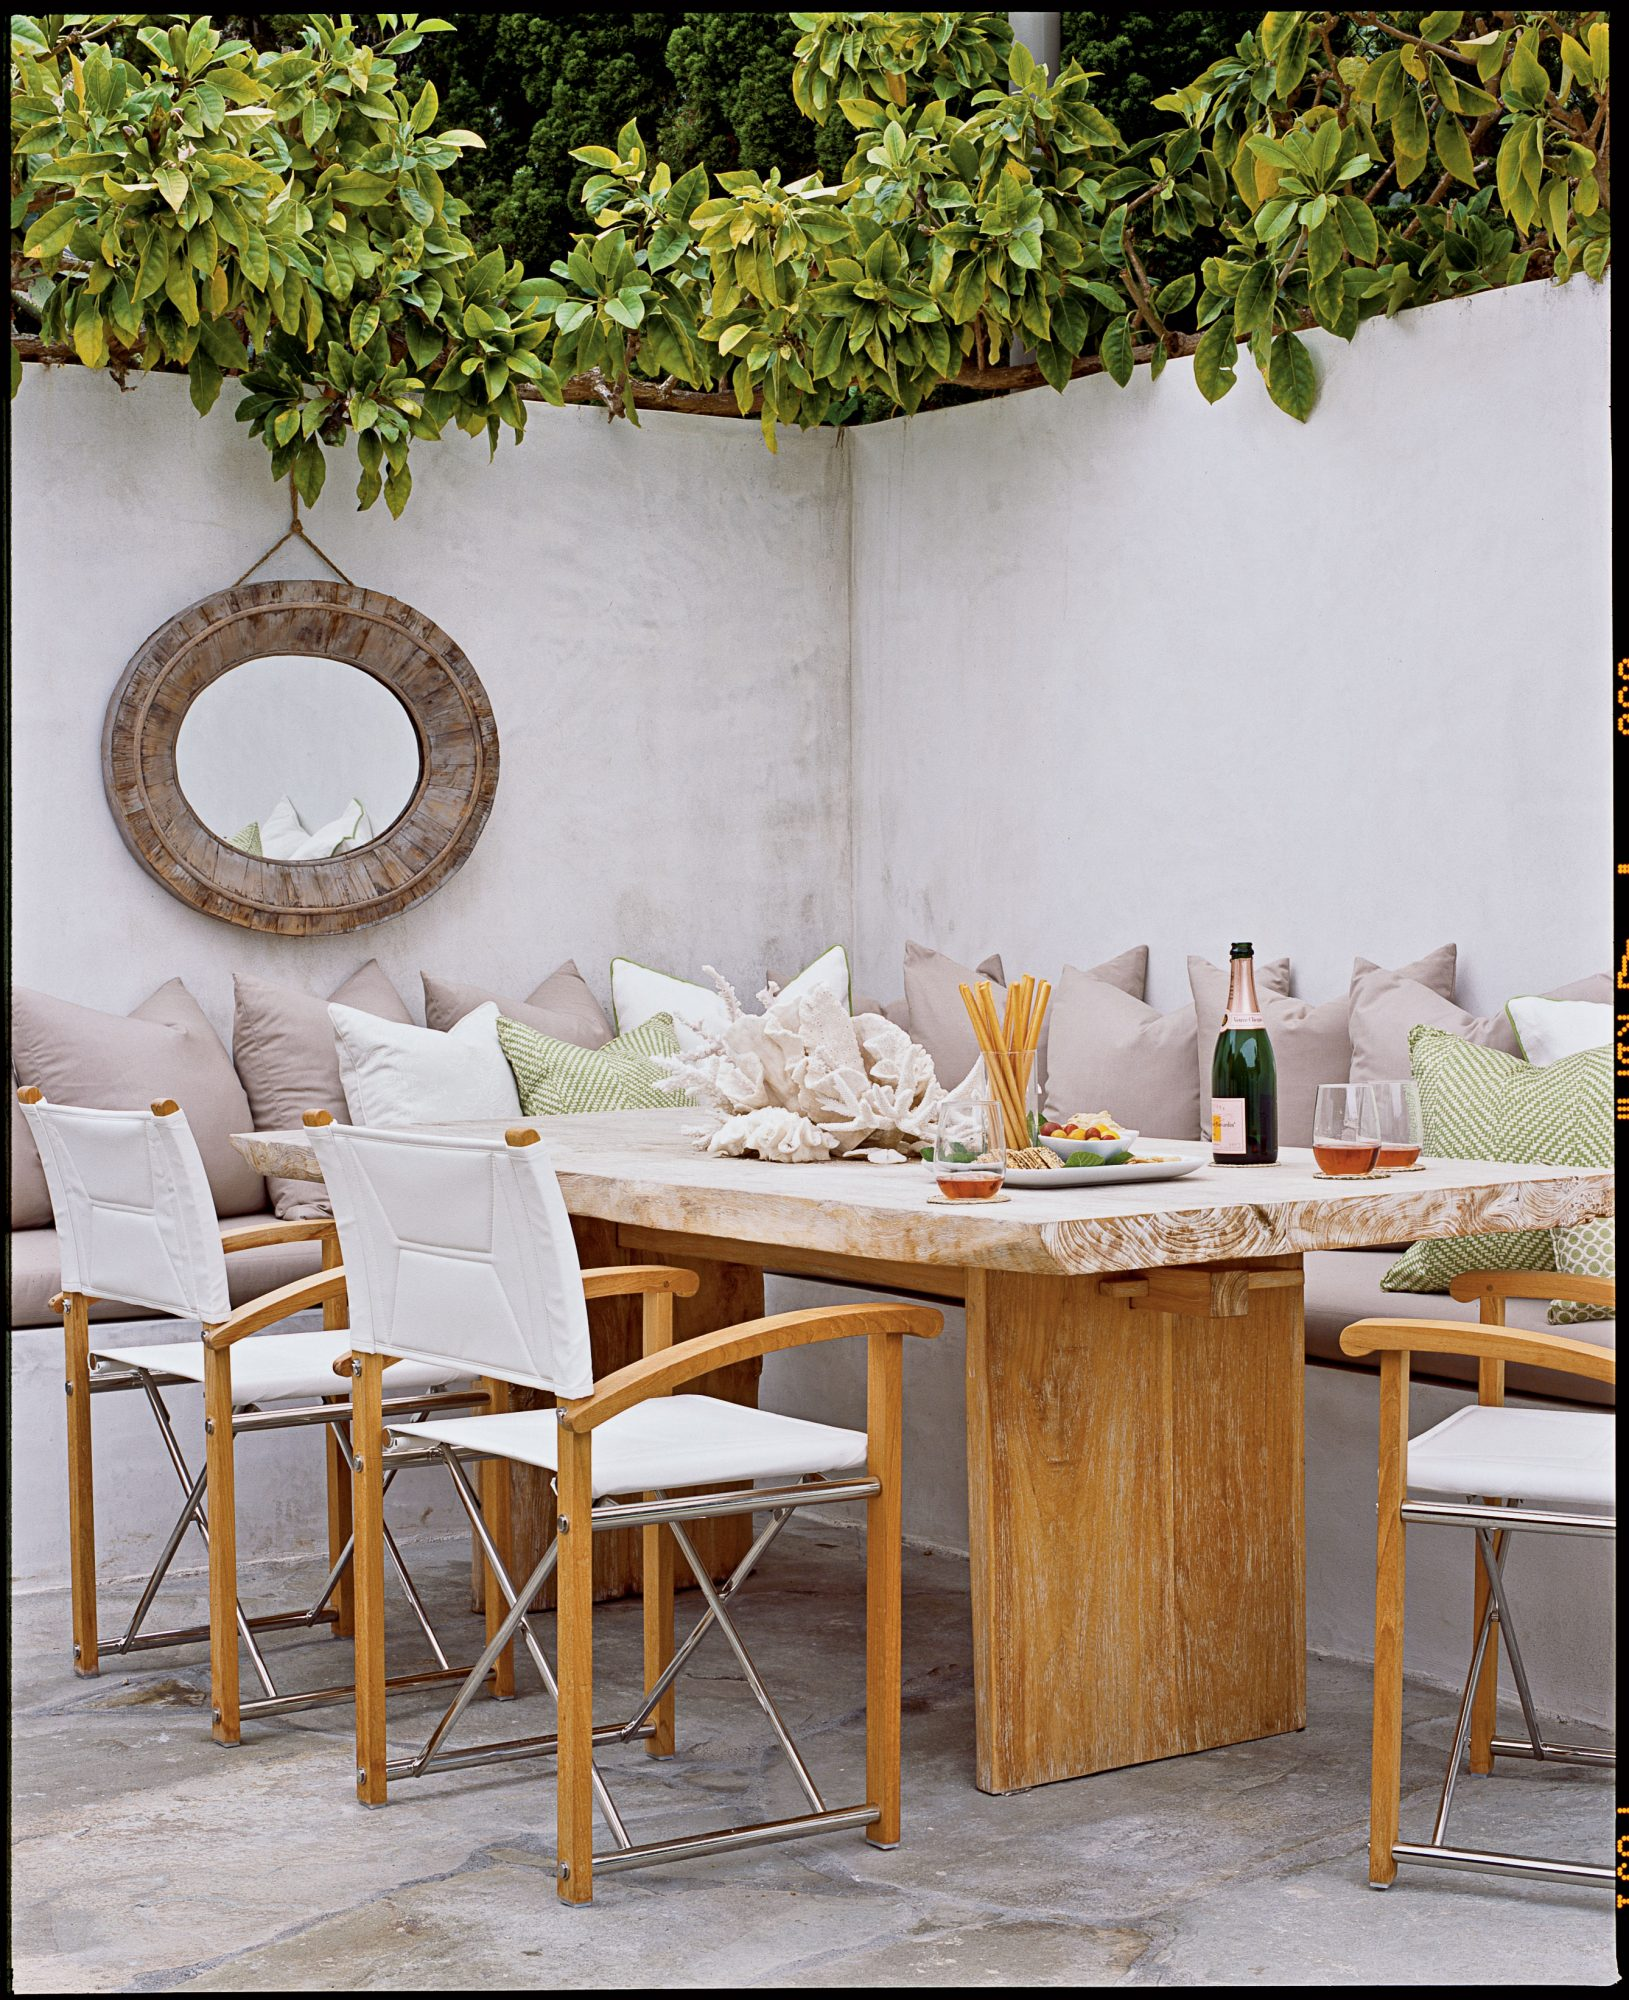 This simple, neutral dining table makes an ideal spot for seaside entertaining thanks to generous seating and ample cushions. A decorative mirror and plush pillows complete the look.